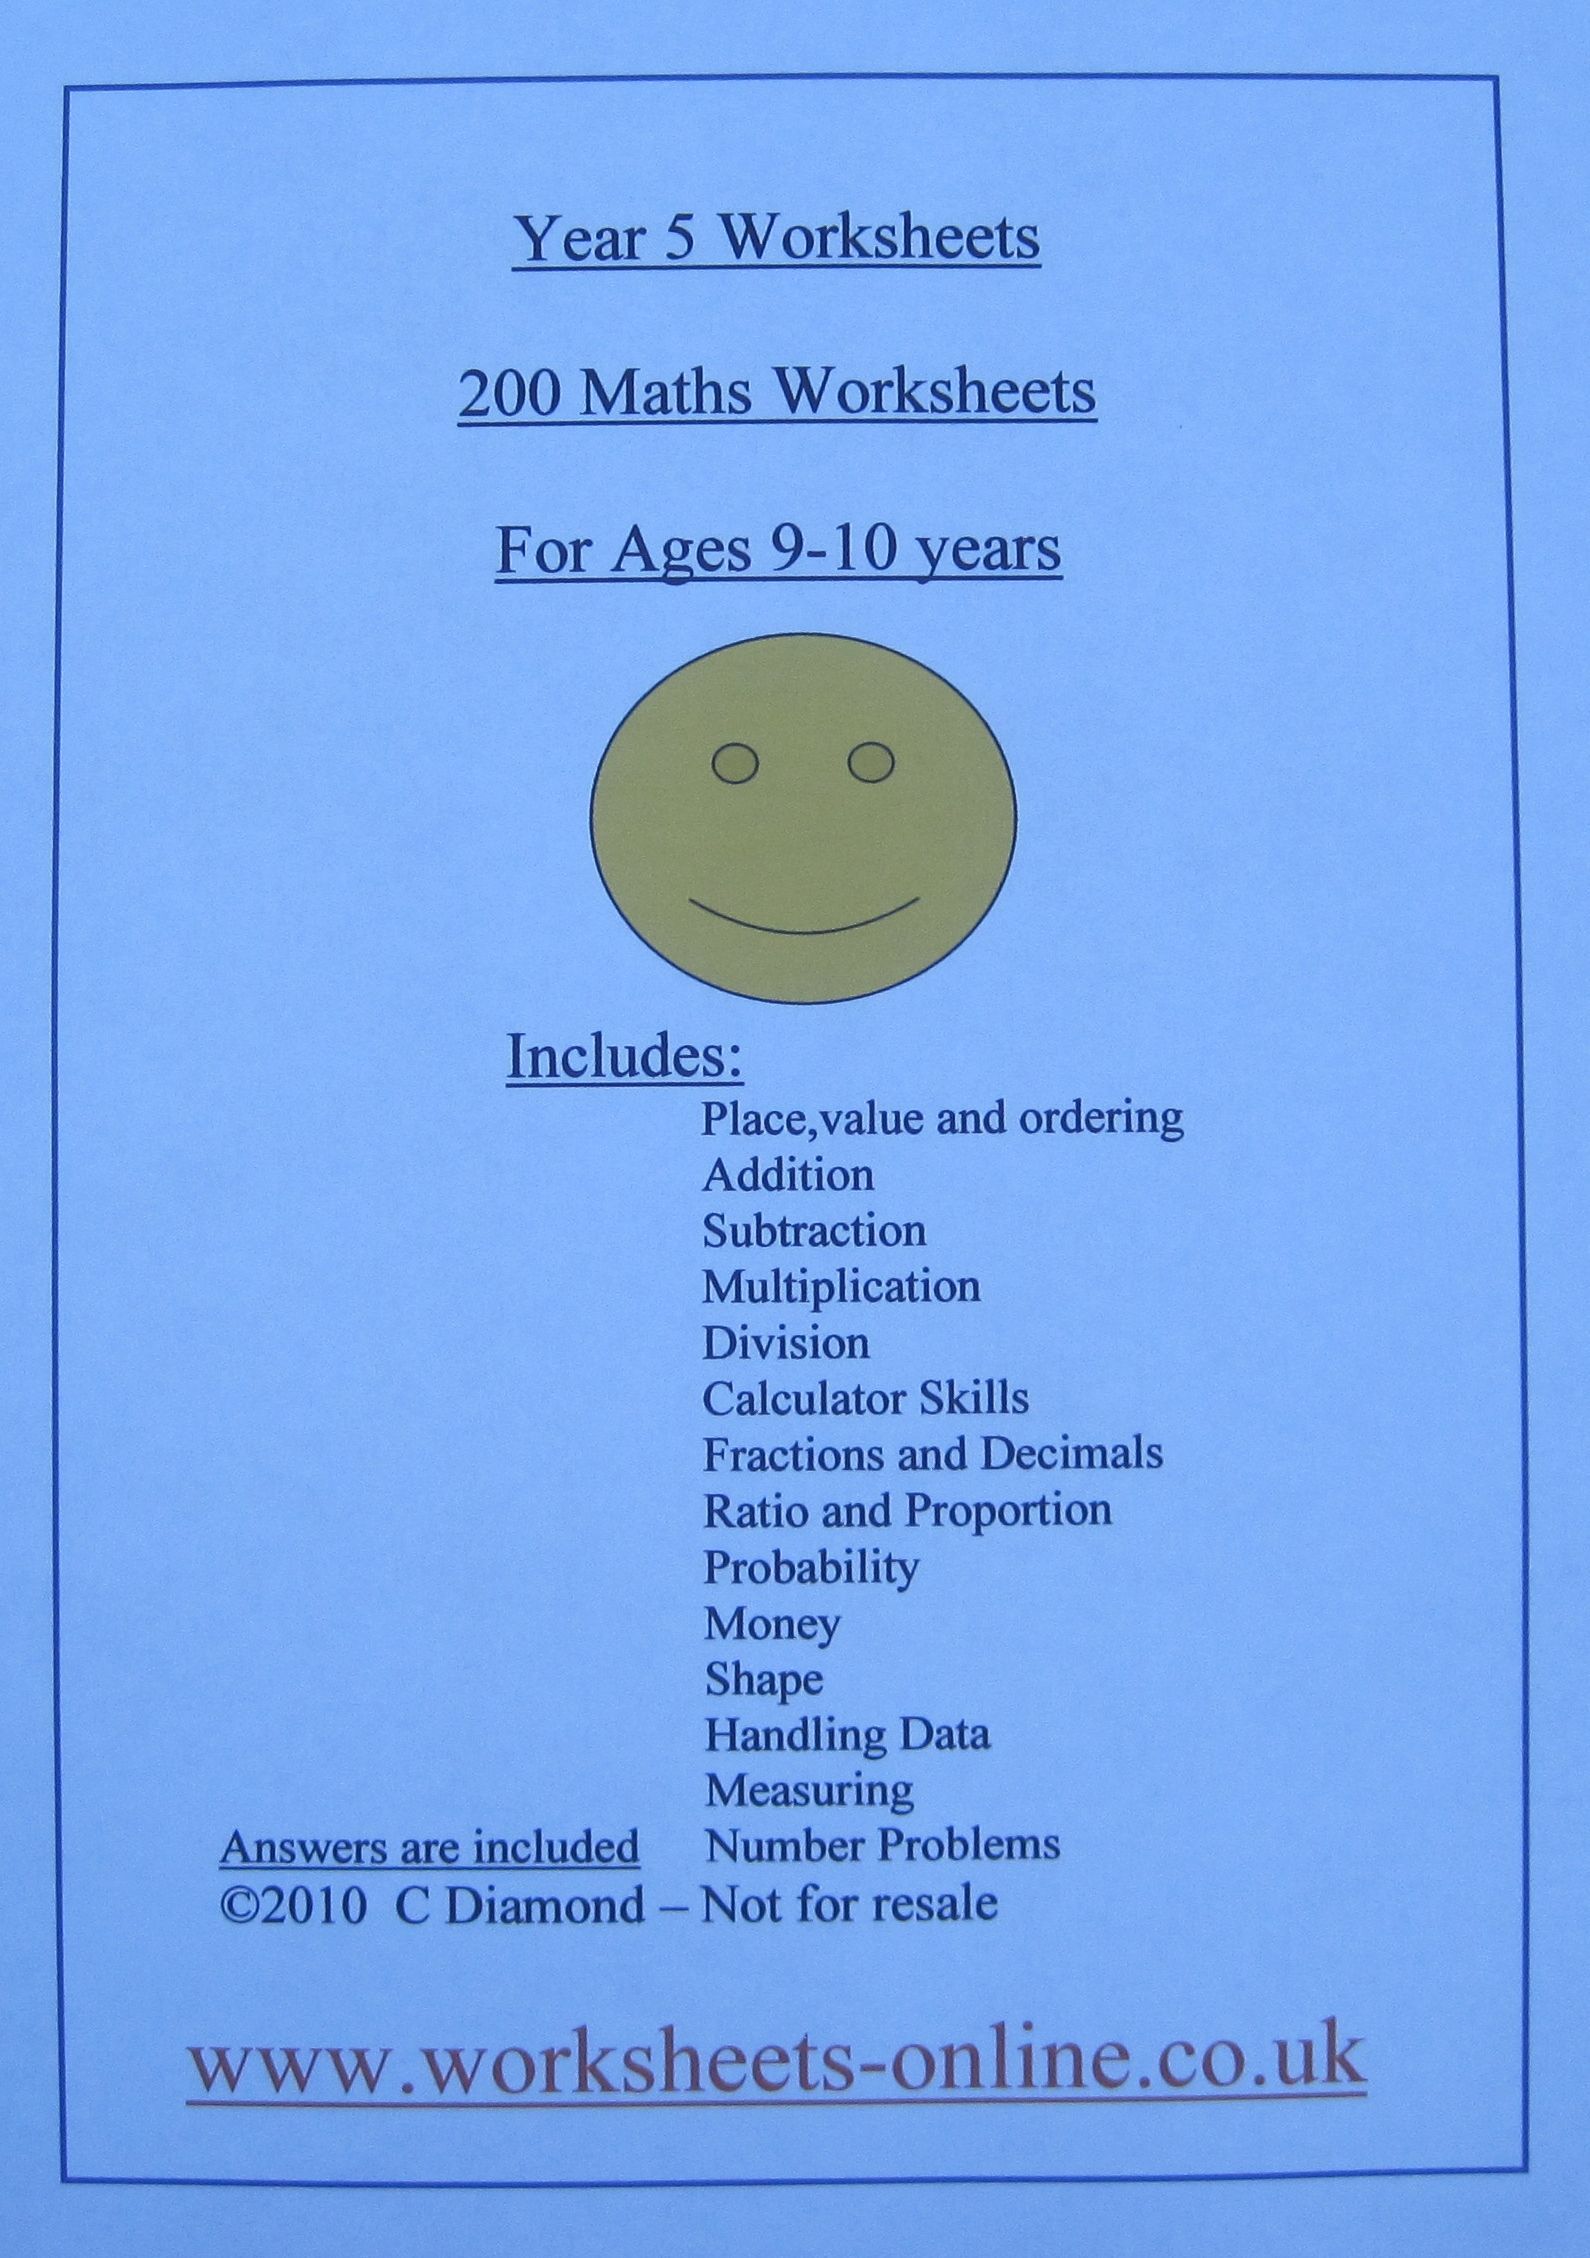 200 Year 5 Maths Worksheets For Children Aged 9 Or 10